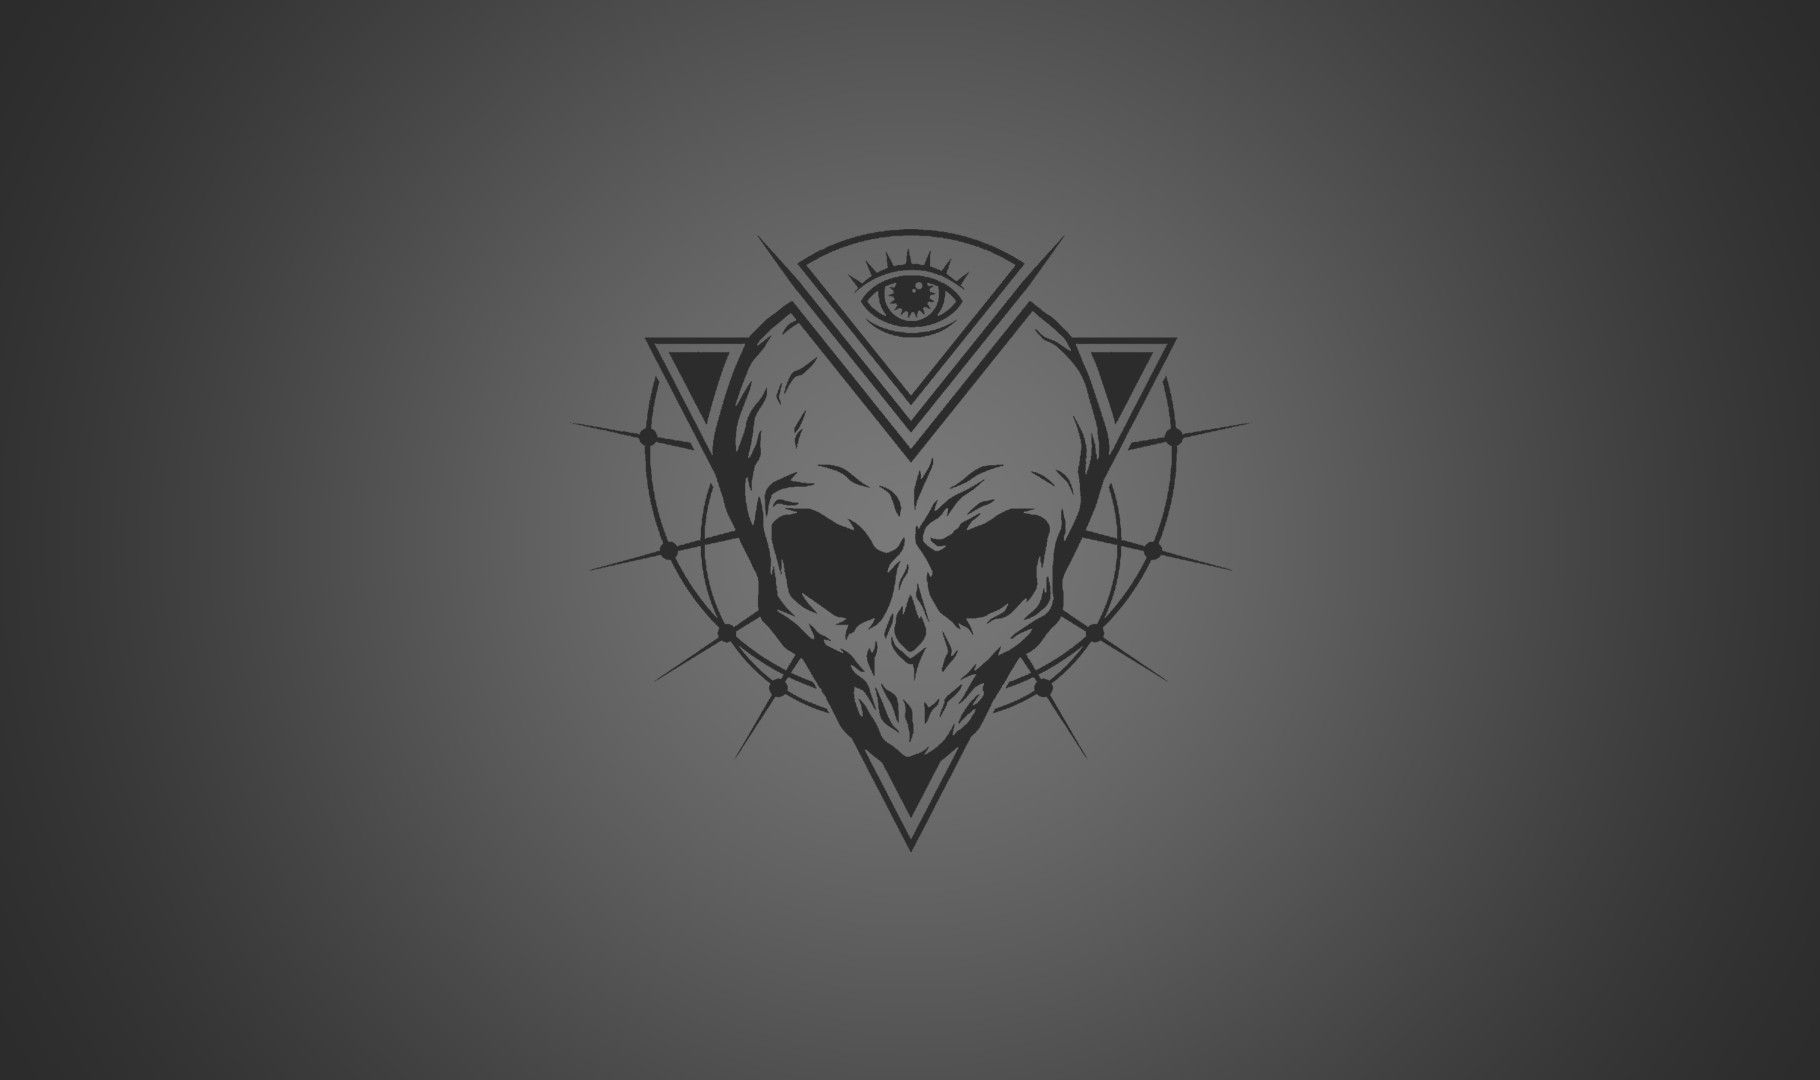 1820x1080 eyes skull triangle simple background the all seeing eye aliens ...